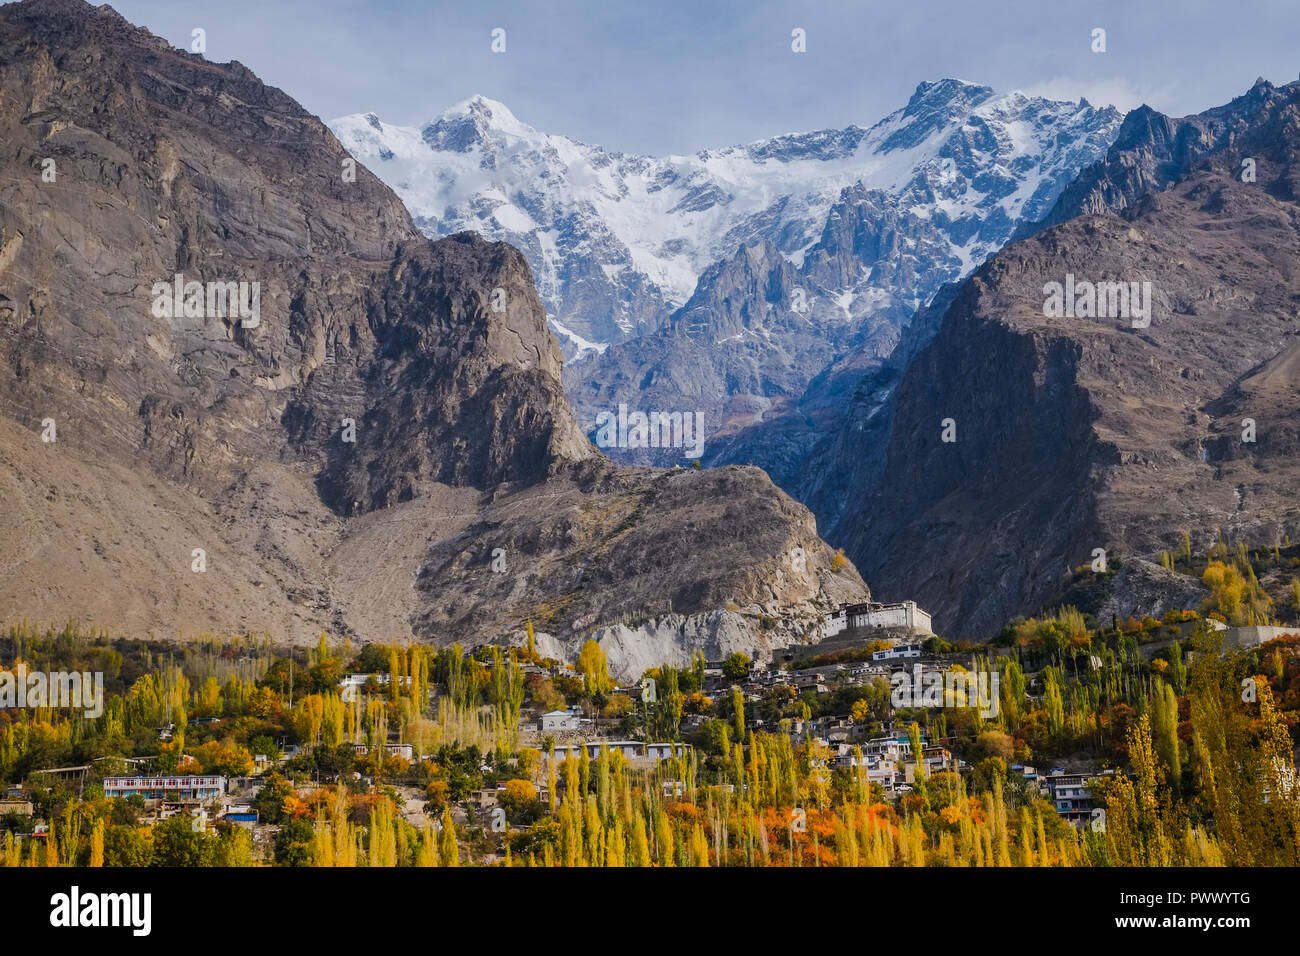 Autumn scene in Hunza valley with a view of Baltit fort. Karimabad, Hunza, Gilgit-Baltistan, Pakistan. - Stock Image